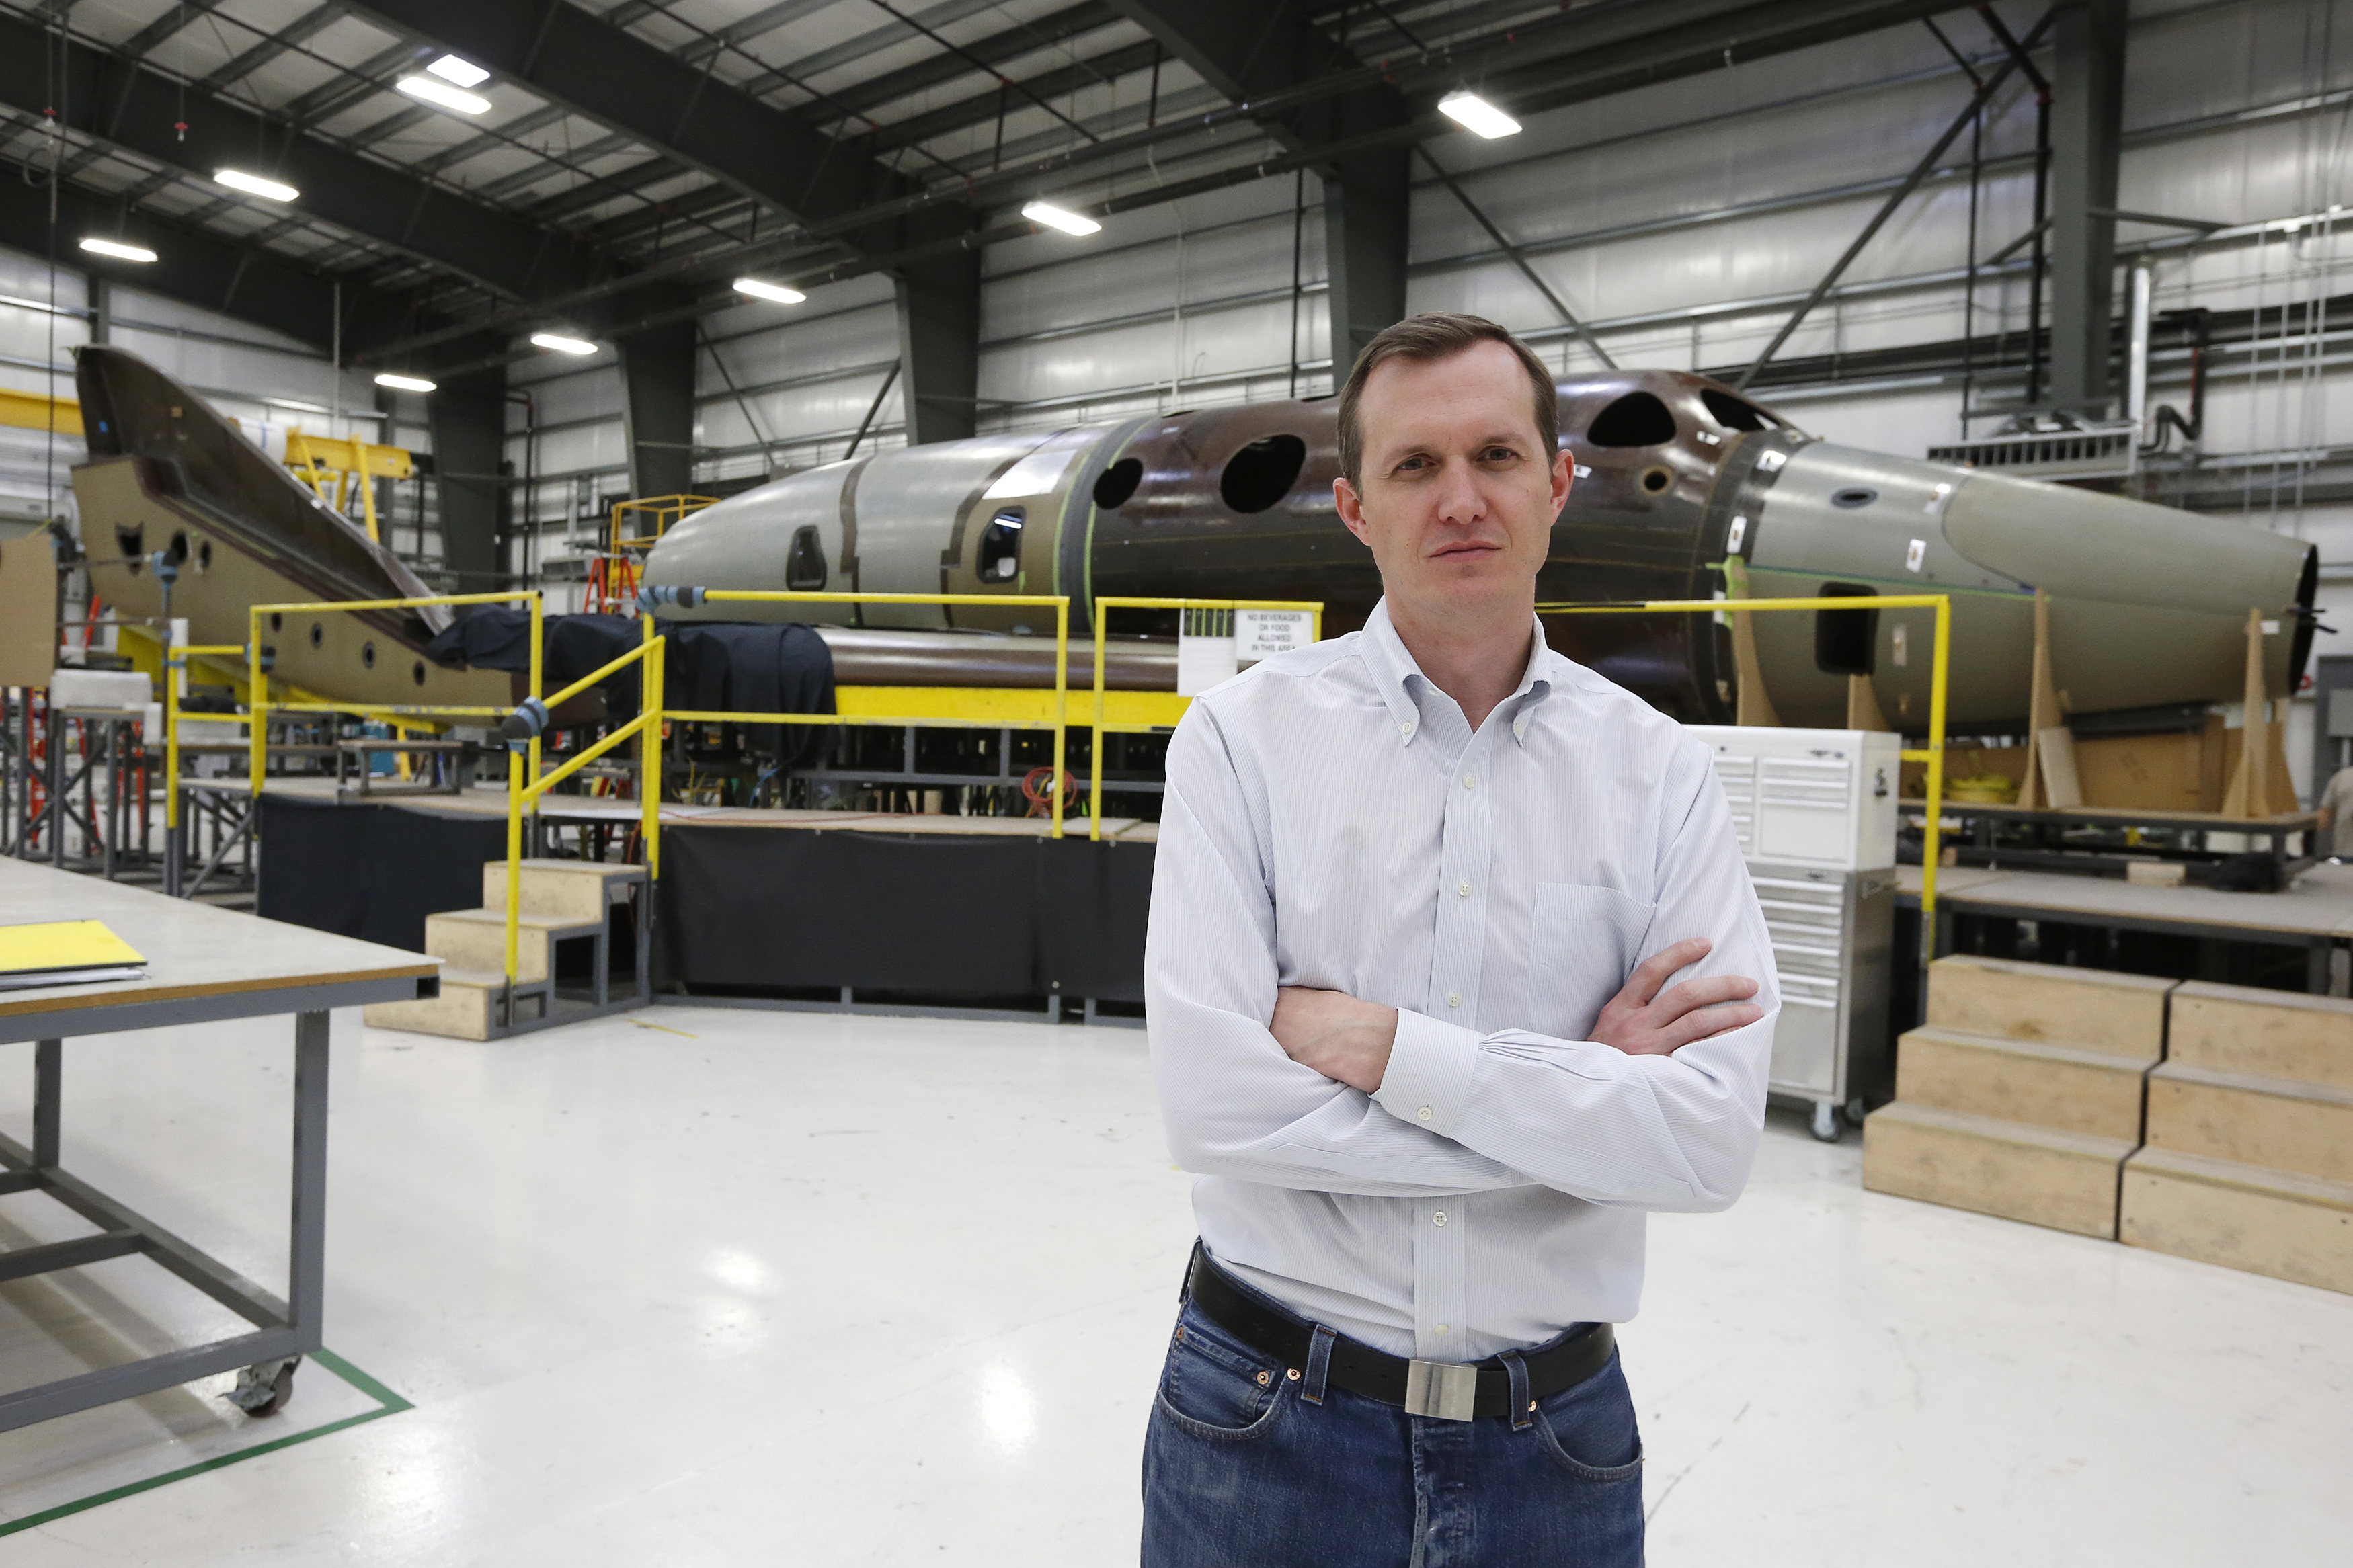 Virgin Galactic's CEO George T. Whitesides stands in front of their new spaceship N202VG, which the company began building 2 and a half years ago, in a hangar at Mojave Air and Space Port in Mojave, California